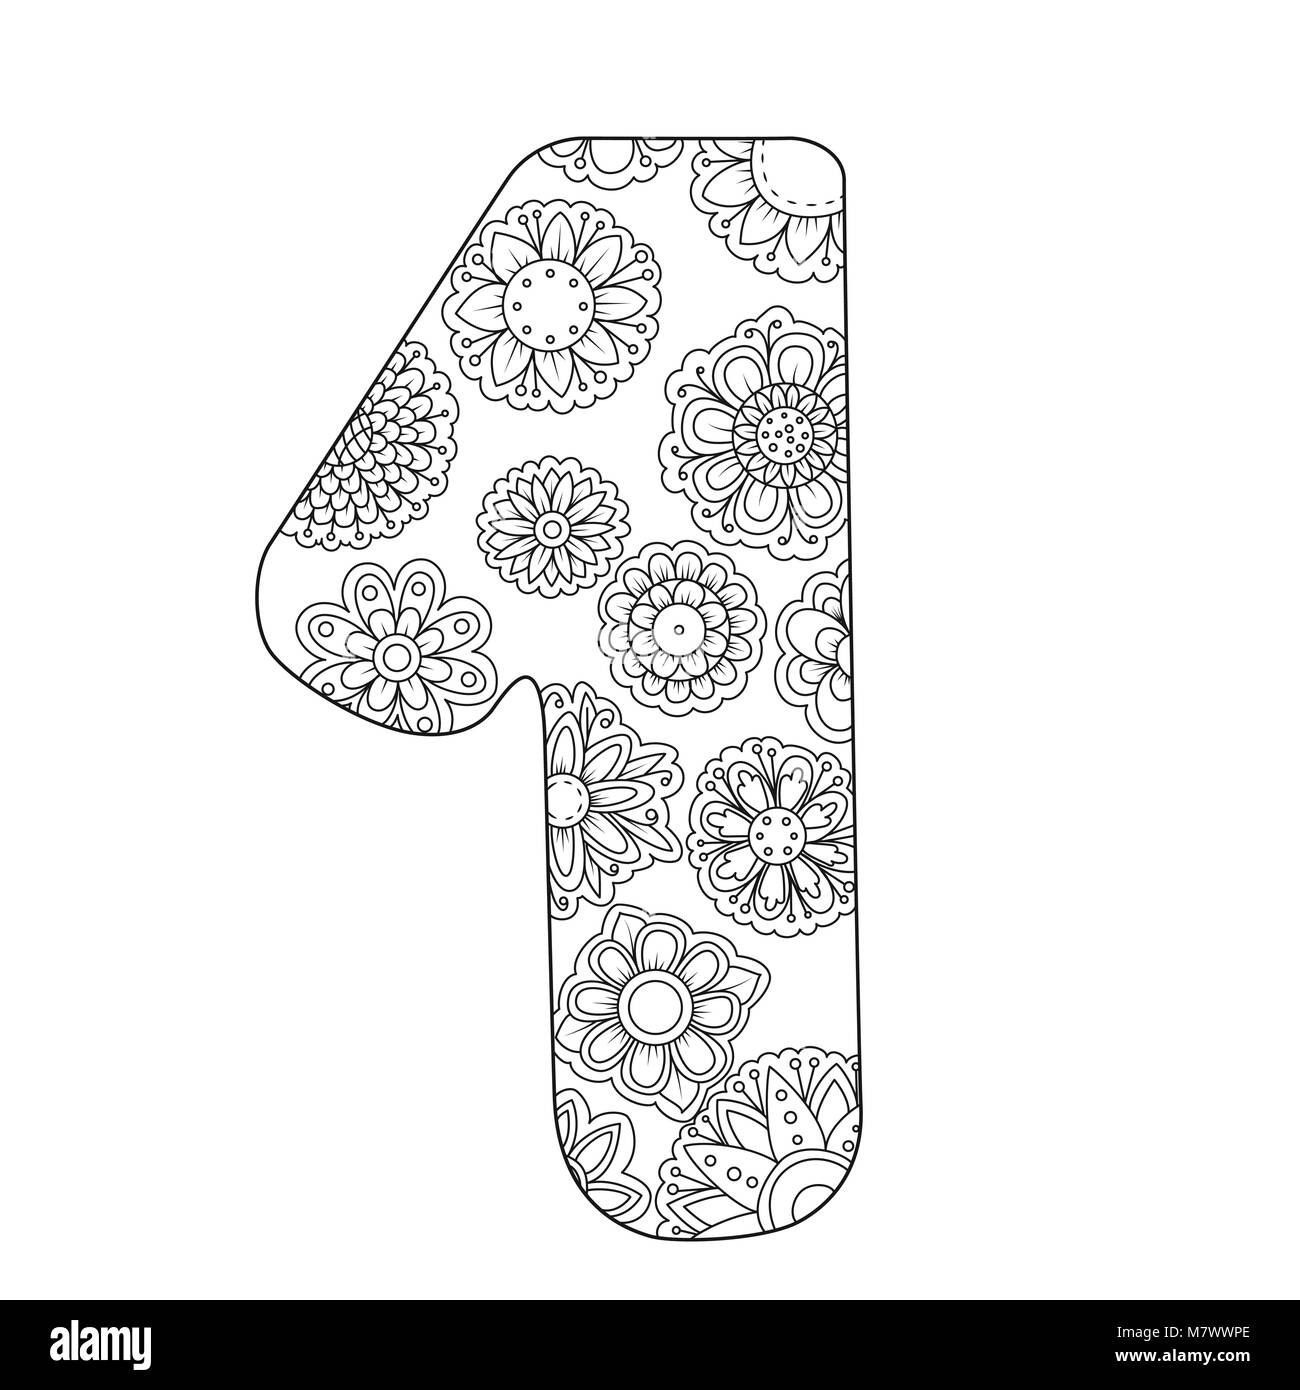 Zen Coloring Book For Adults Number One Figure 1 Tangle Pattern